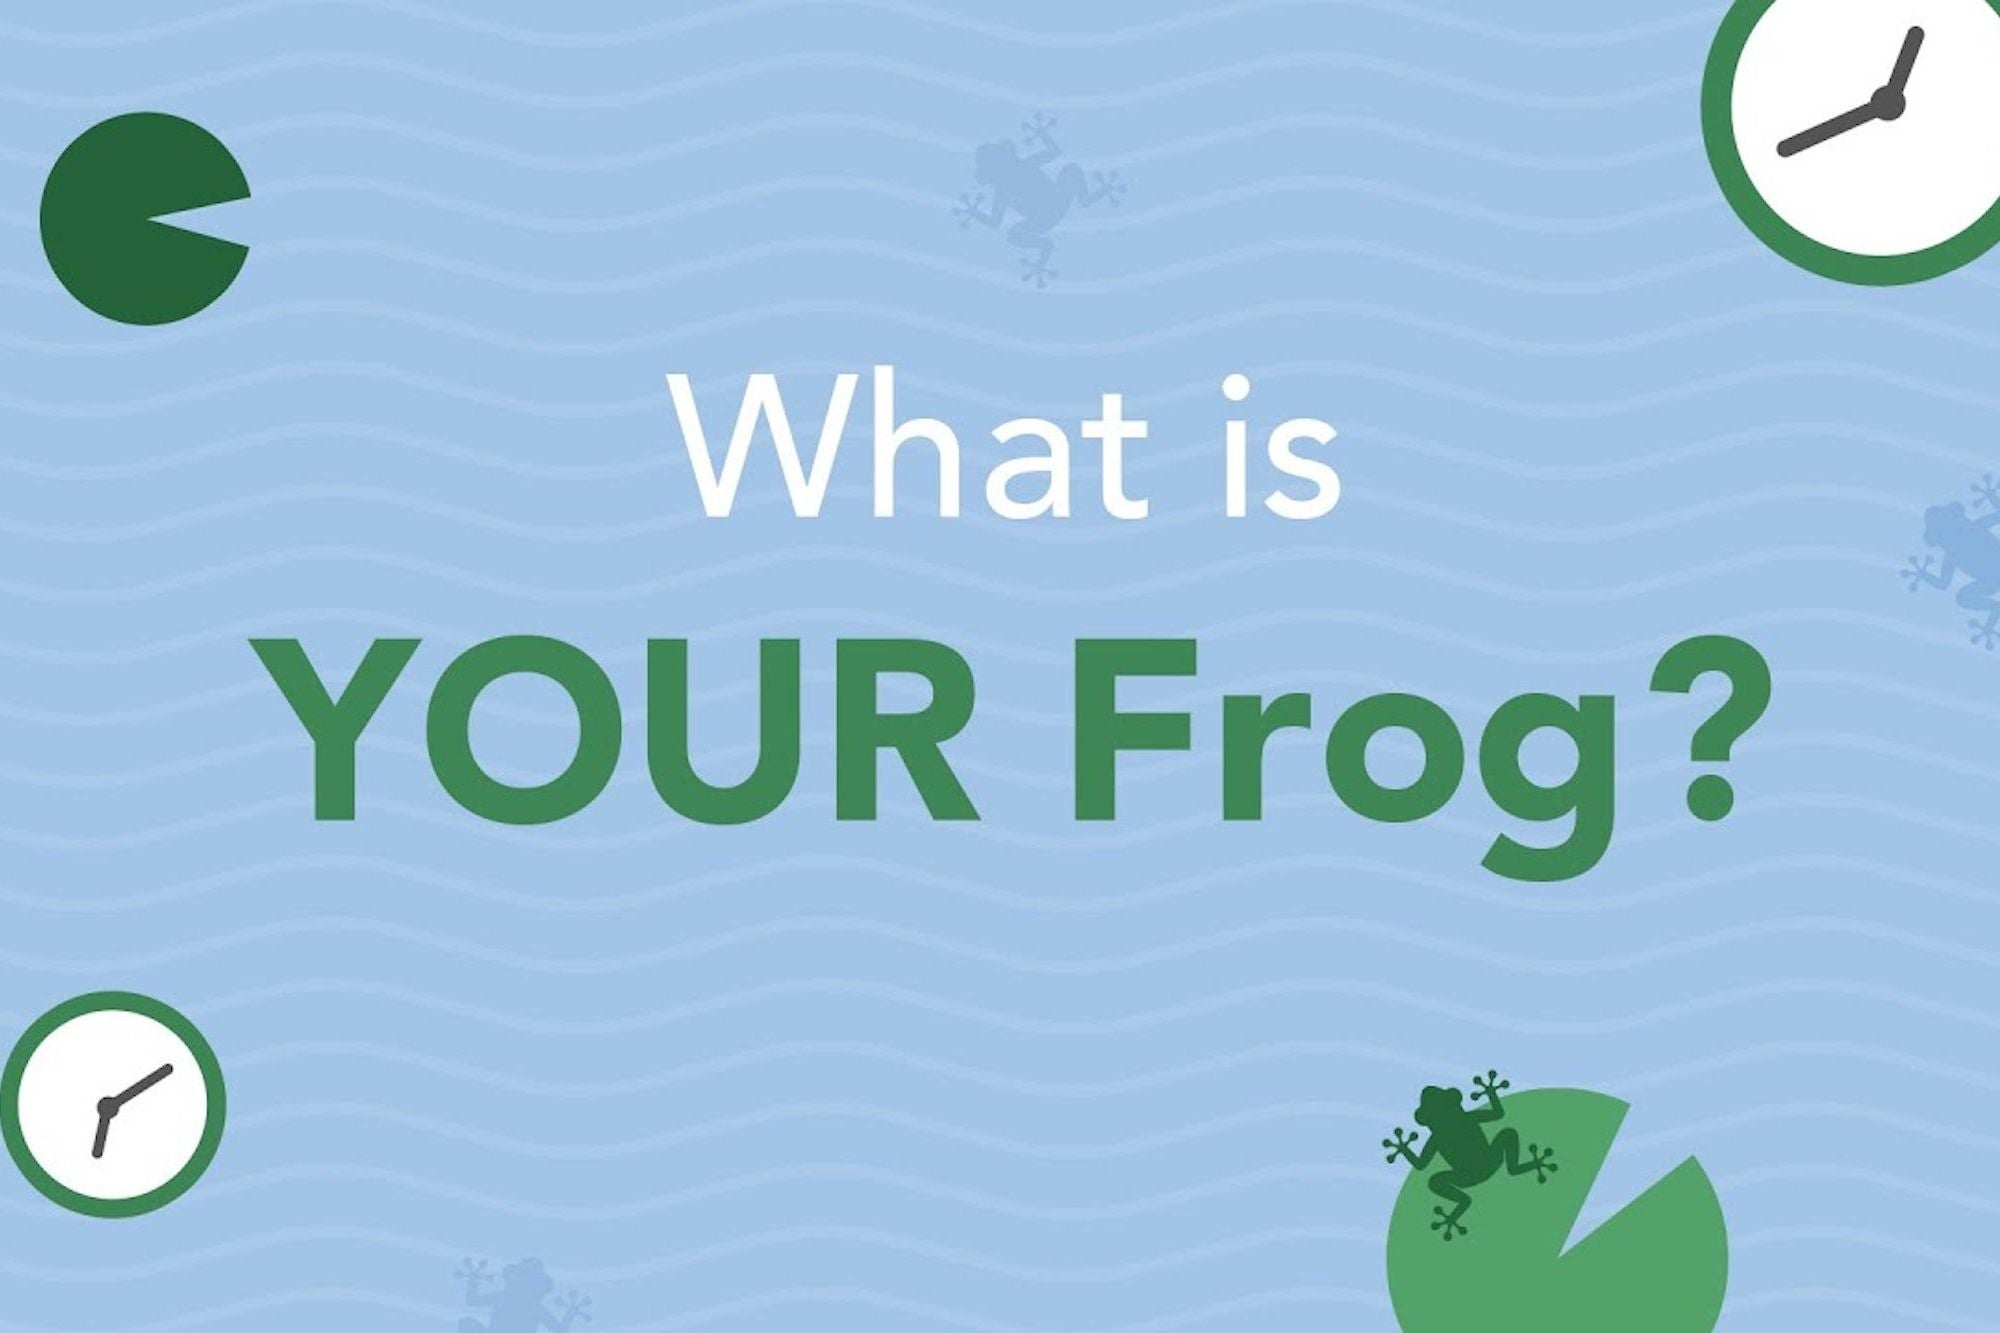 What Is Your Frog? This Exercise Will Help You Rid Yourself of Mental Roadblocks.